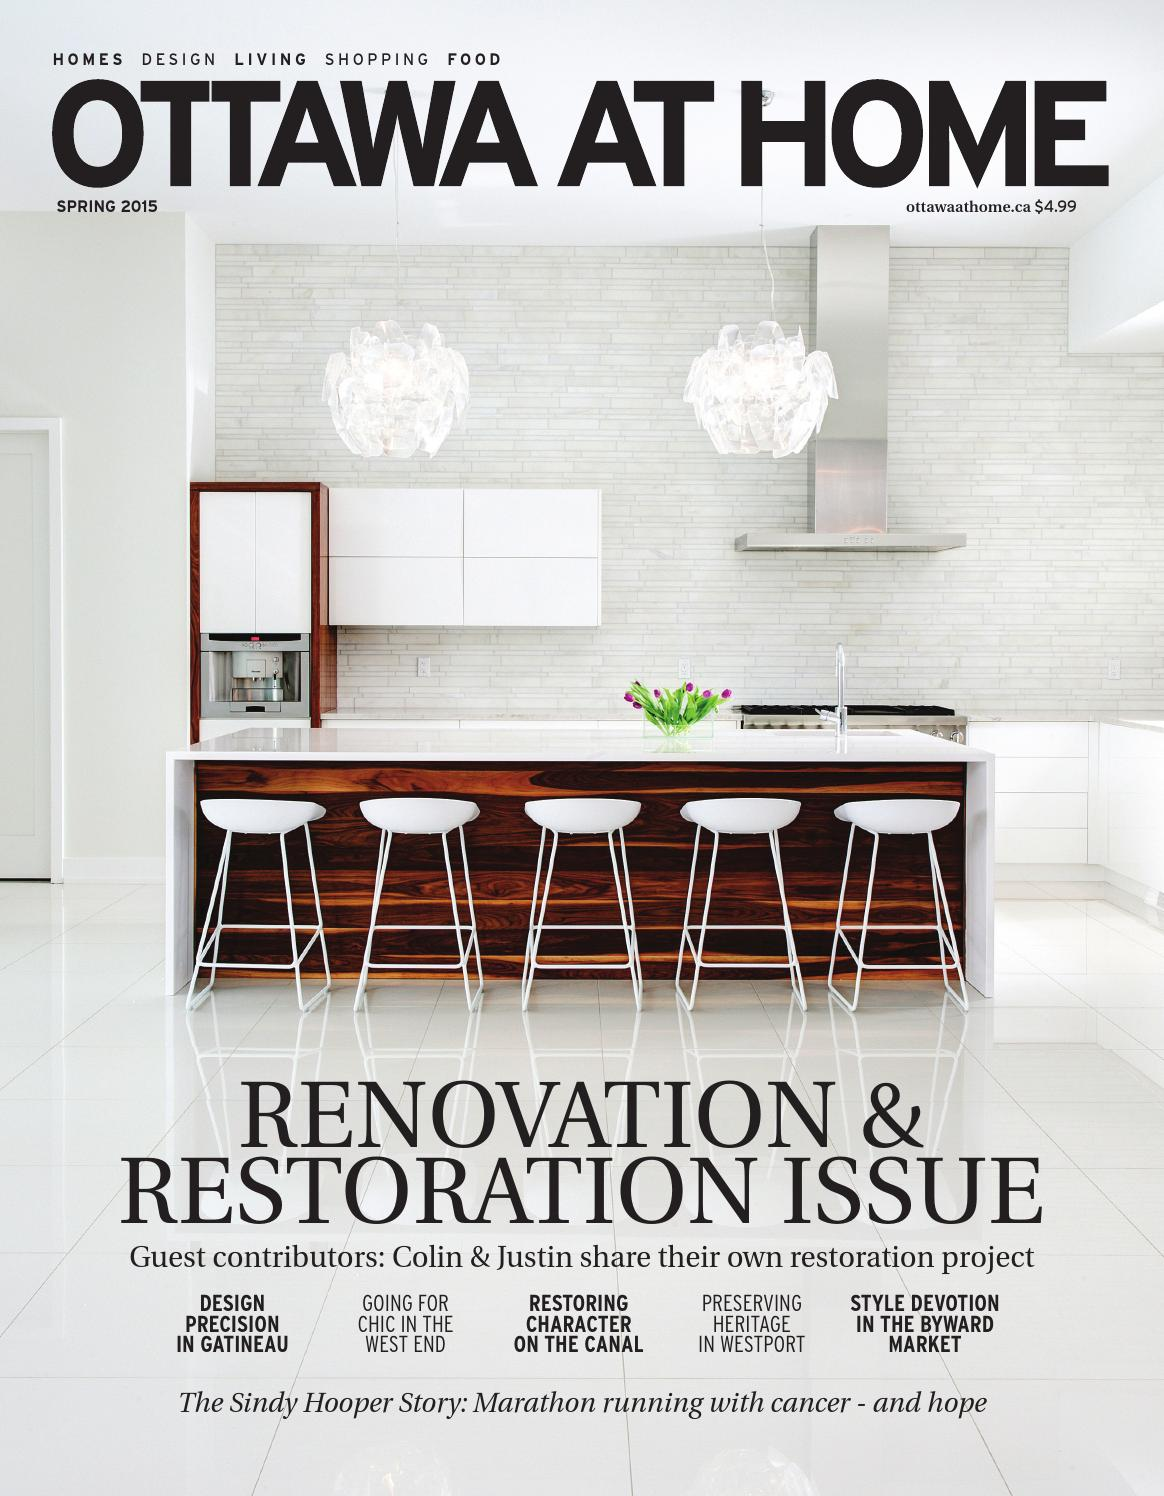 Ottawa At Home Spring 2015 by Great River Media inc. - issuu